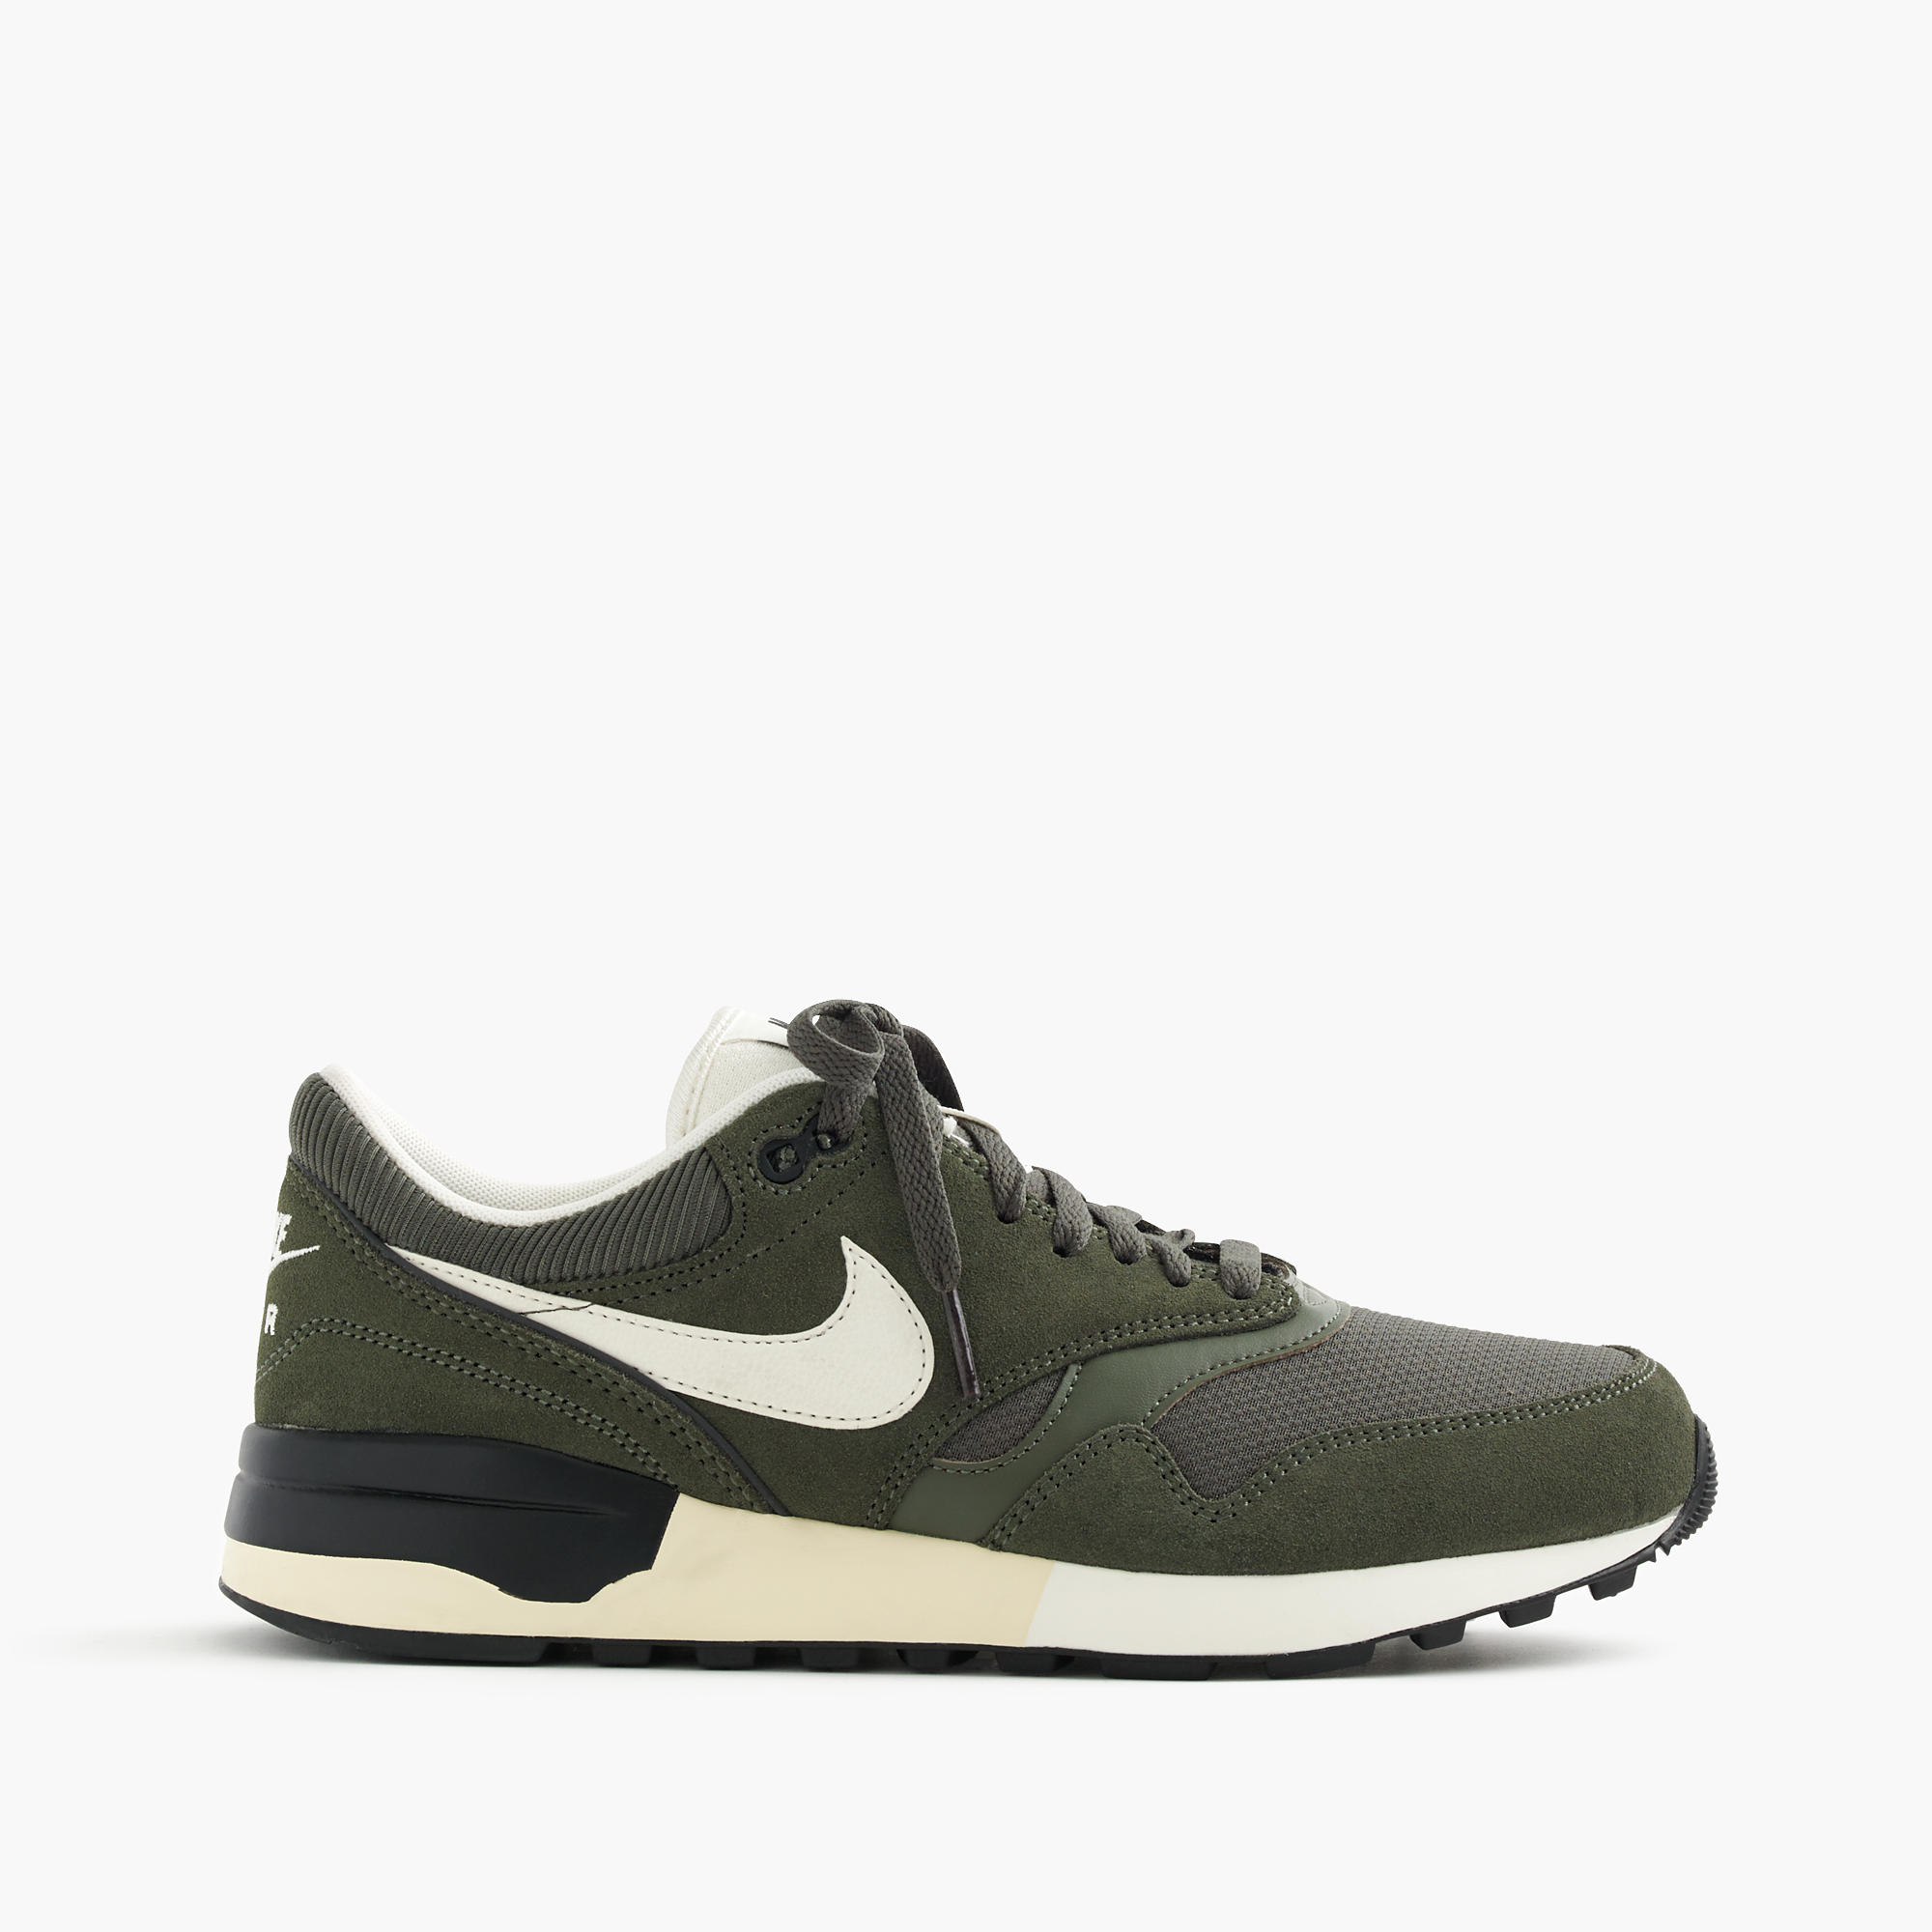 nike air odyssey sneakers in military green men 39 s sneakers j crew. Black Bedroom Furniture Sets. Home Design Ideas